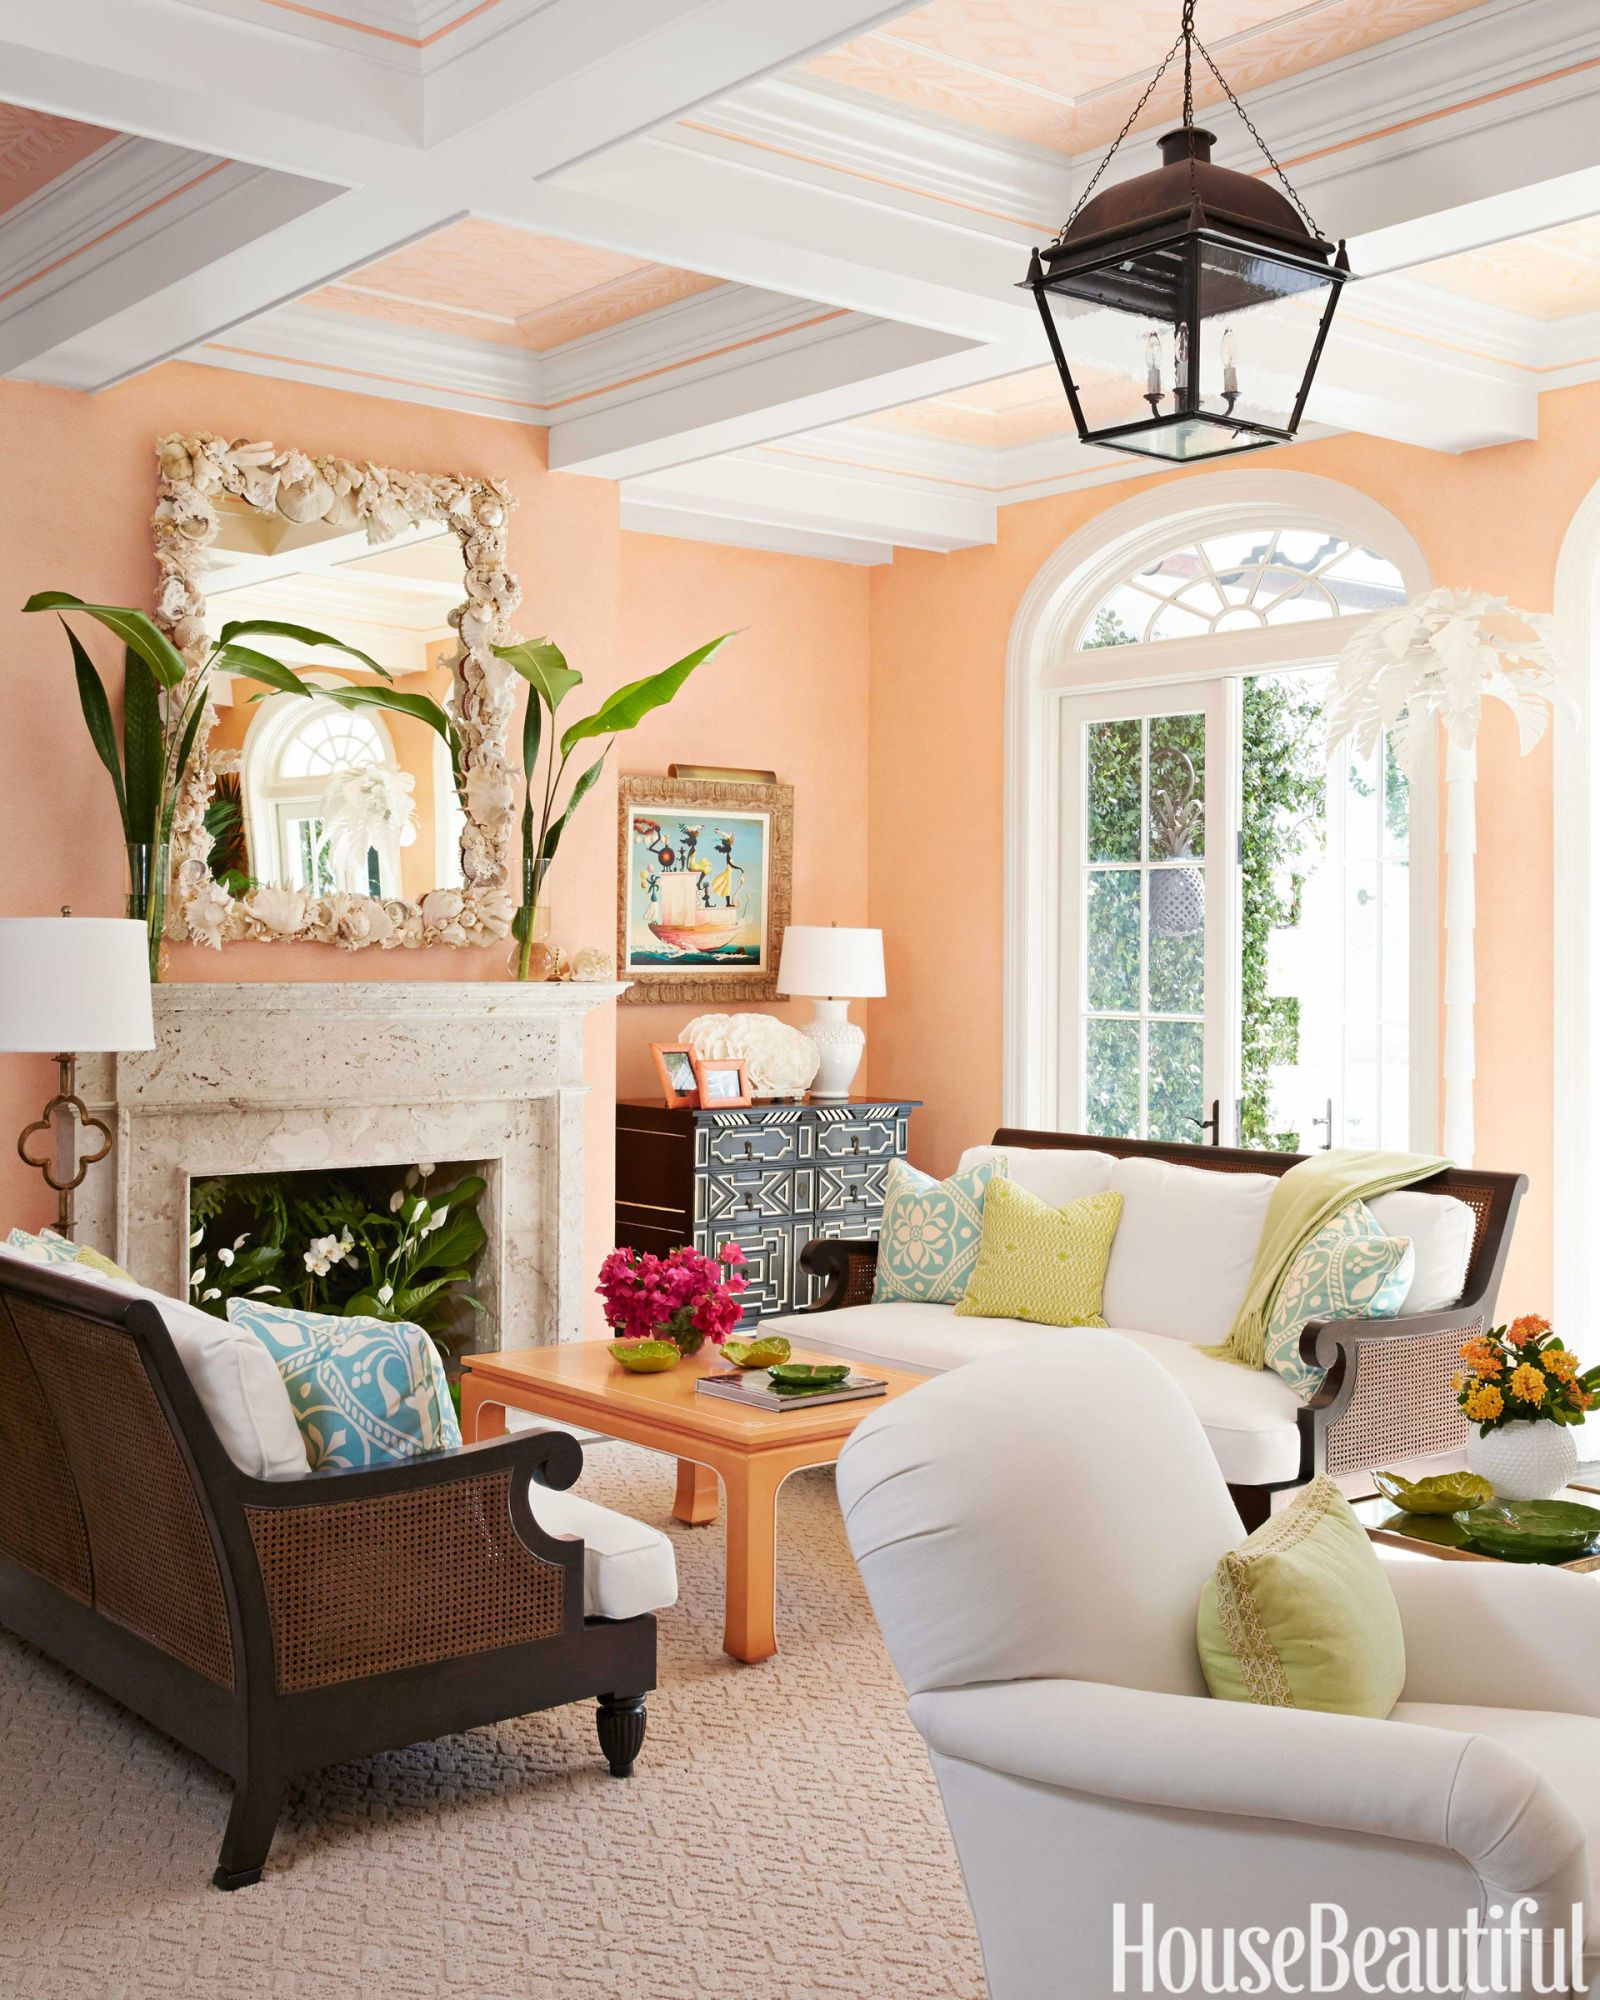 A Colorful And Whimsical Palm Beach House Paint Colors For Living Room Living Room Color Schemes Living Room Wall Color